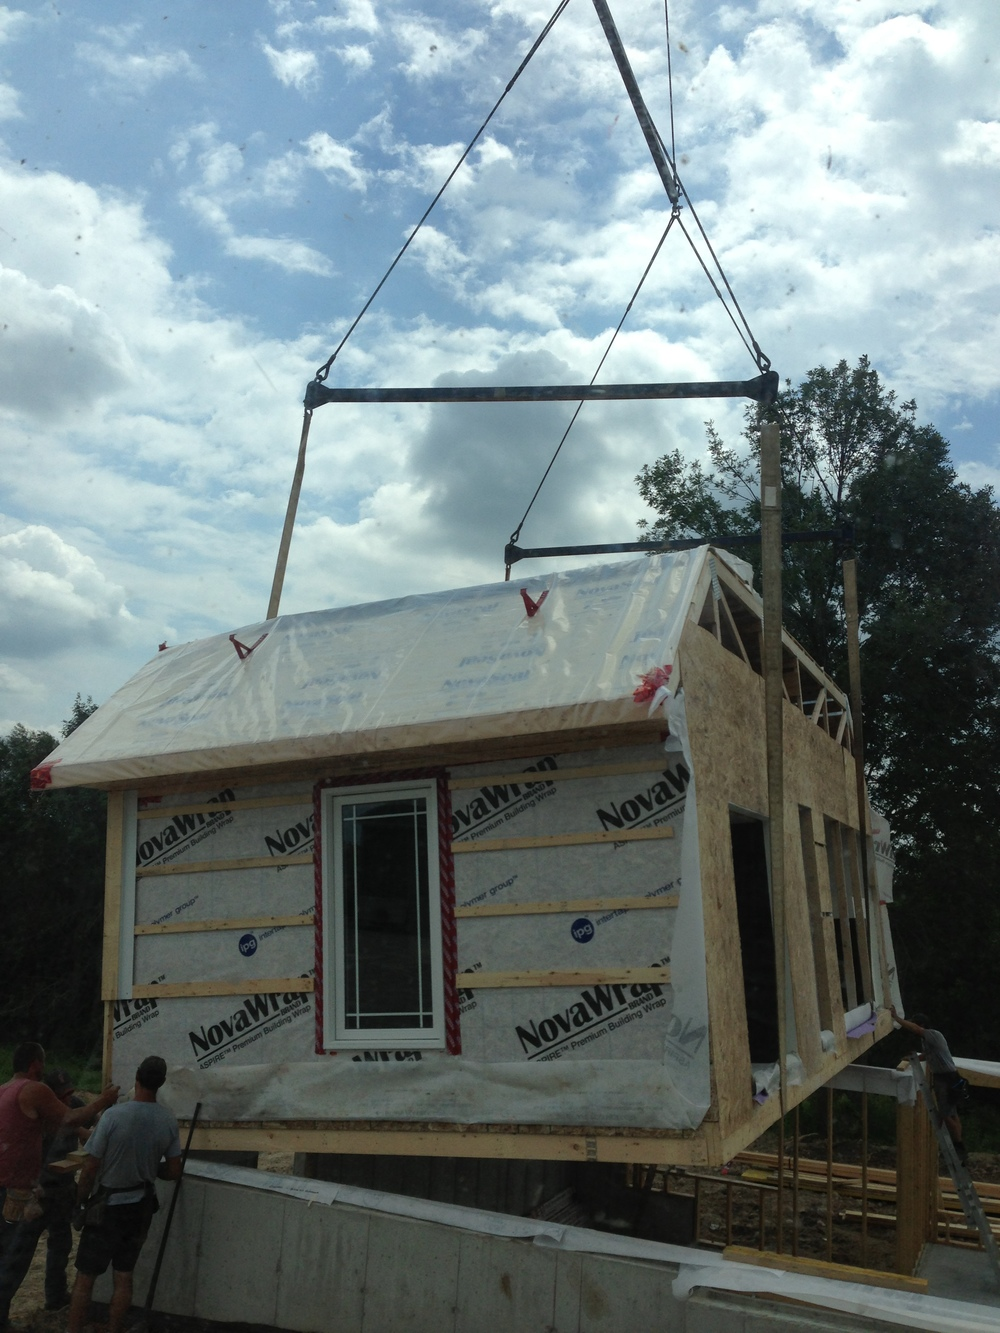 Pre fabricated home being lifted onto foundation by 75 ton crane